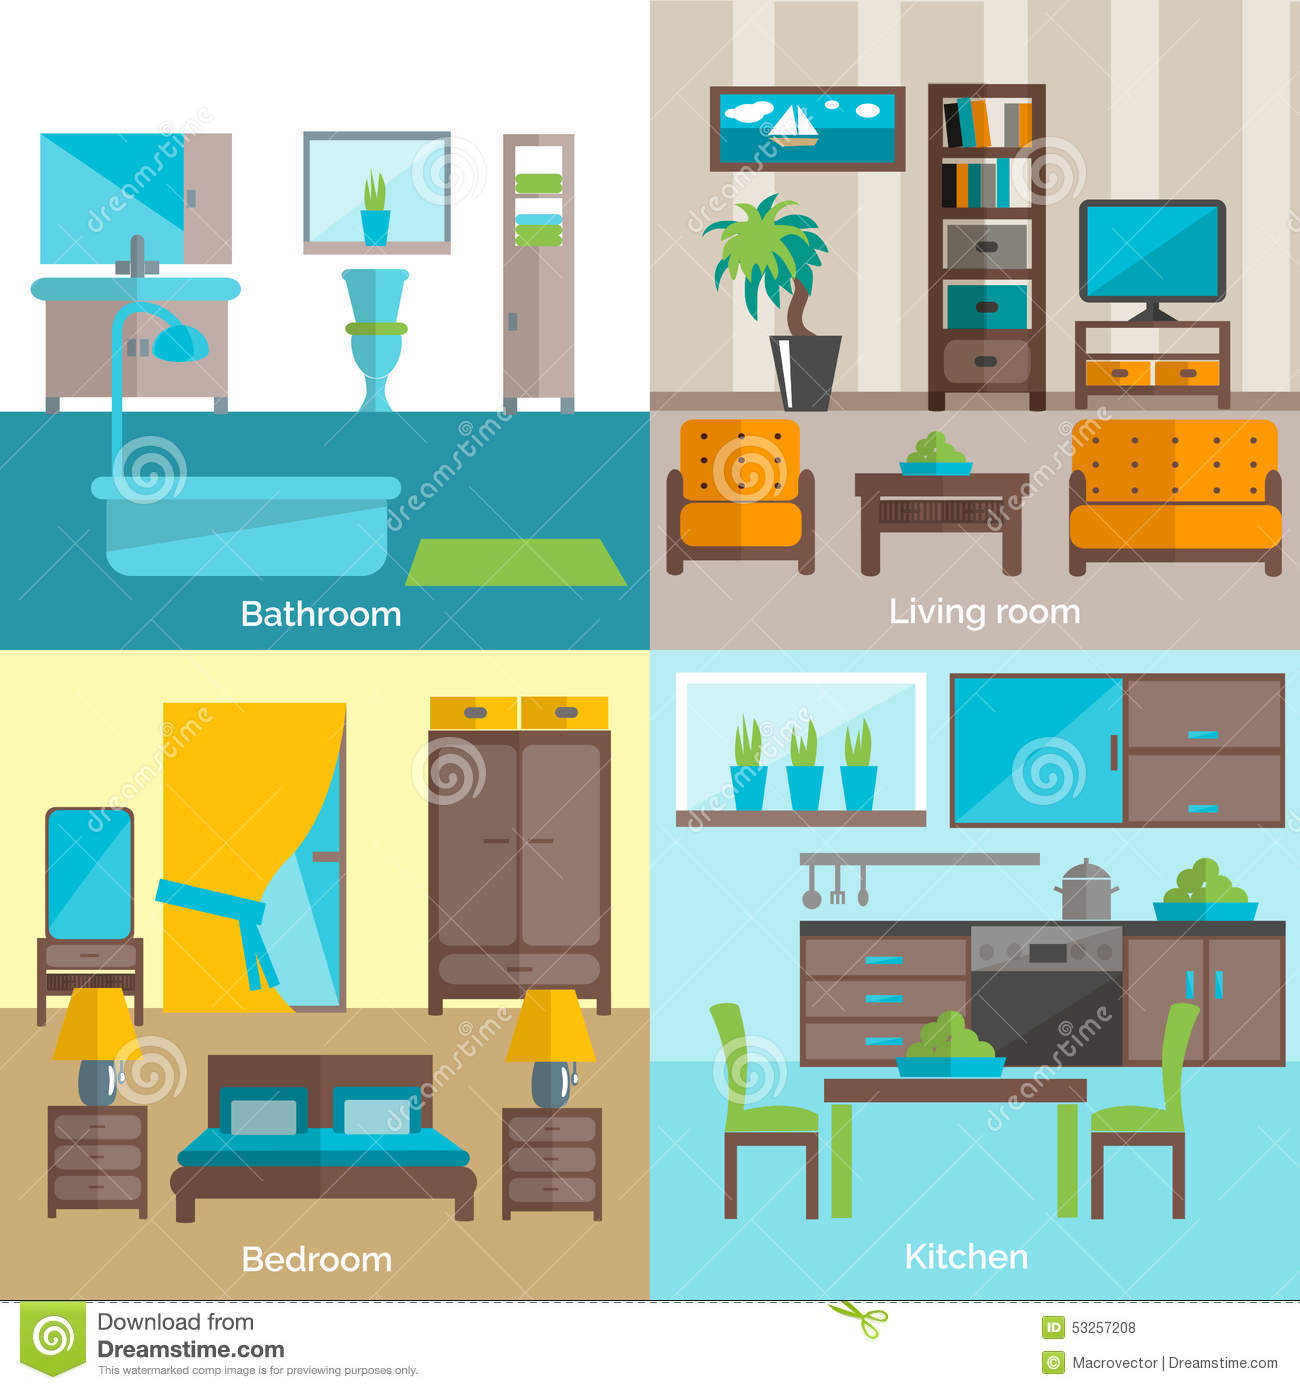 Interior rooms furnishing 4 flat icons stock vector for 15x15 living room